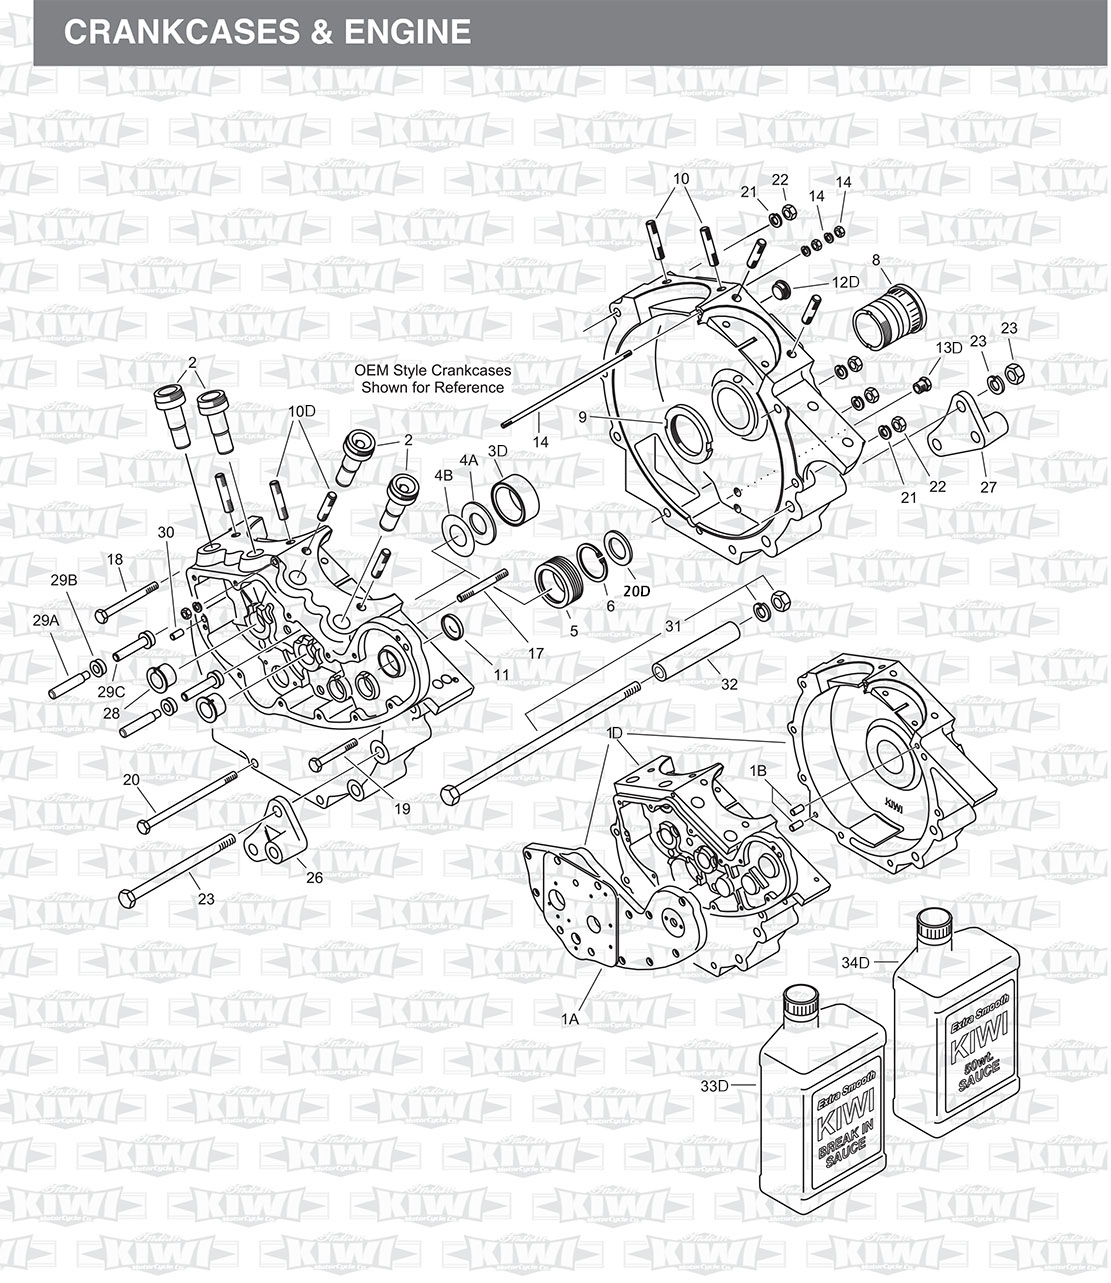 Marvelous Crankcases Engines For Indian Motorcycles Wiring Cloud Grayisramohammedshrineorg